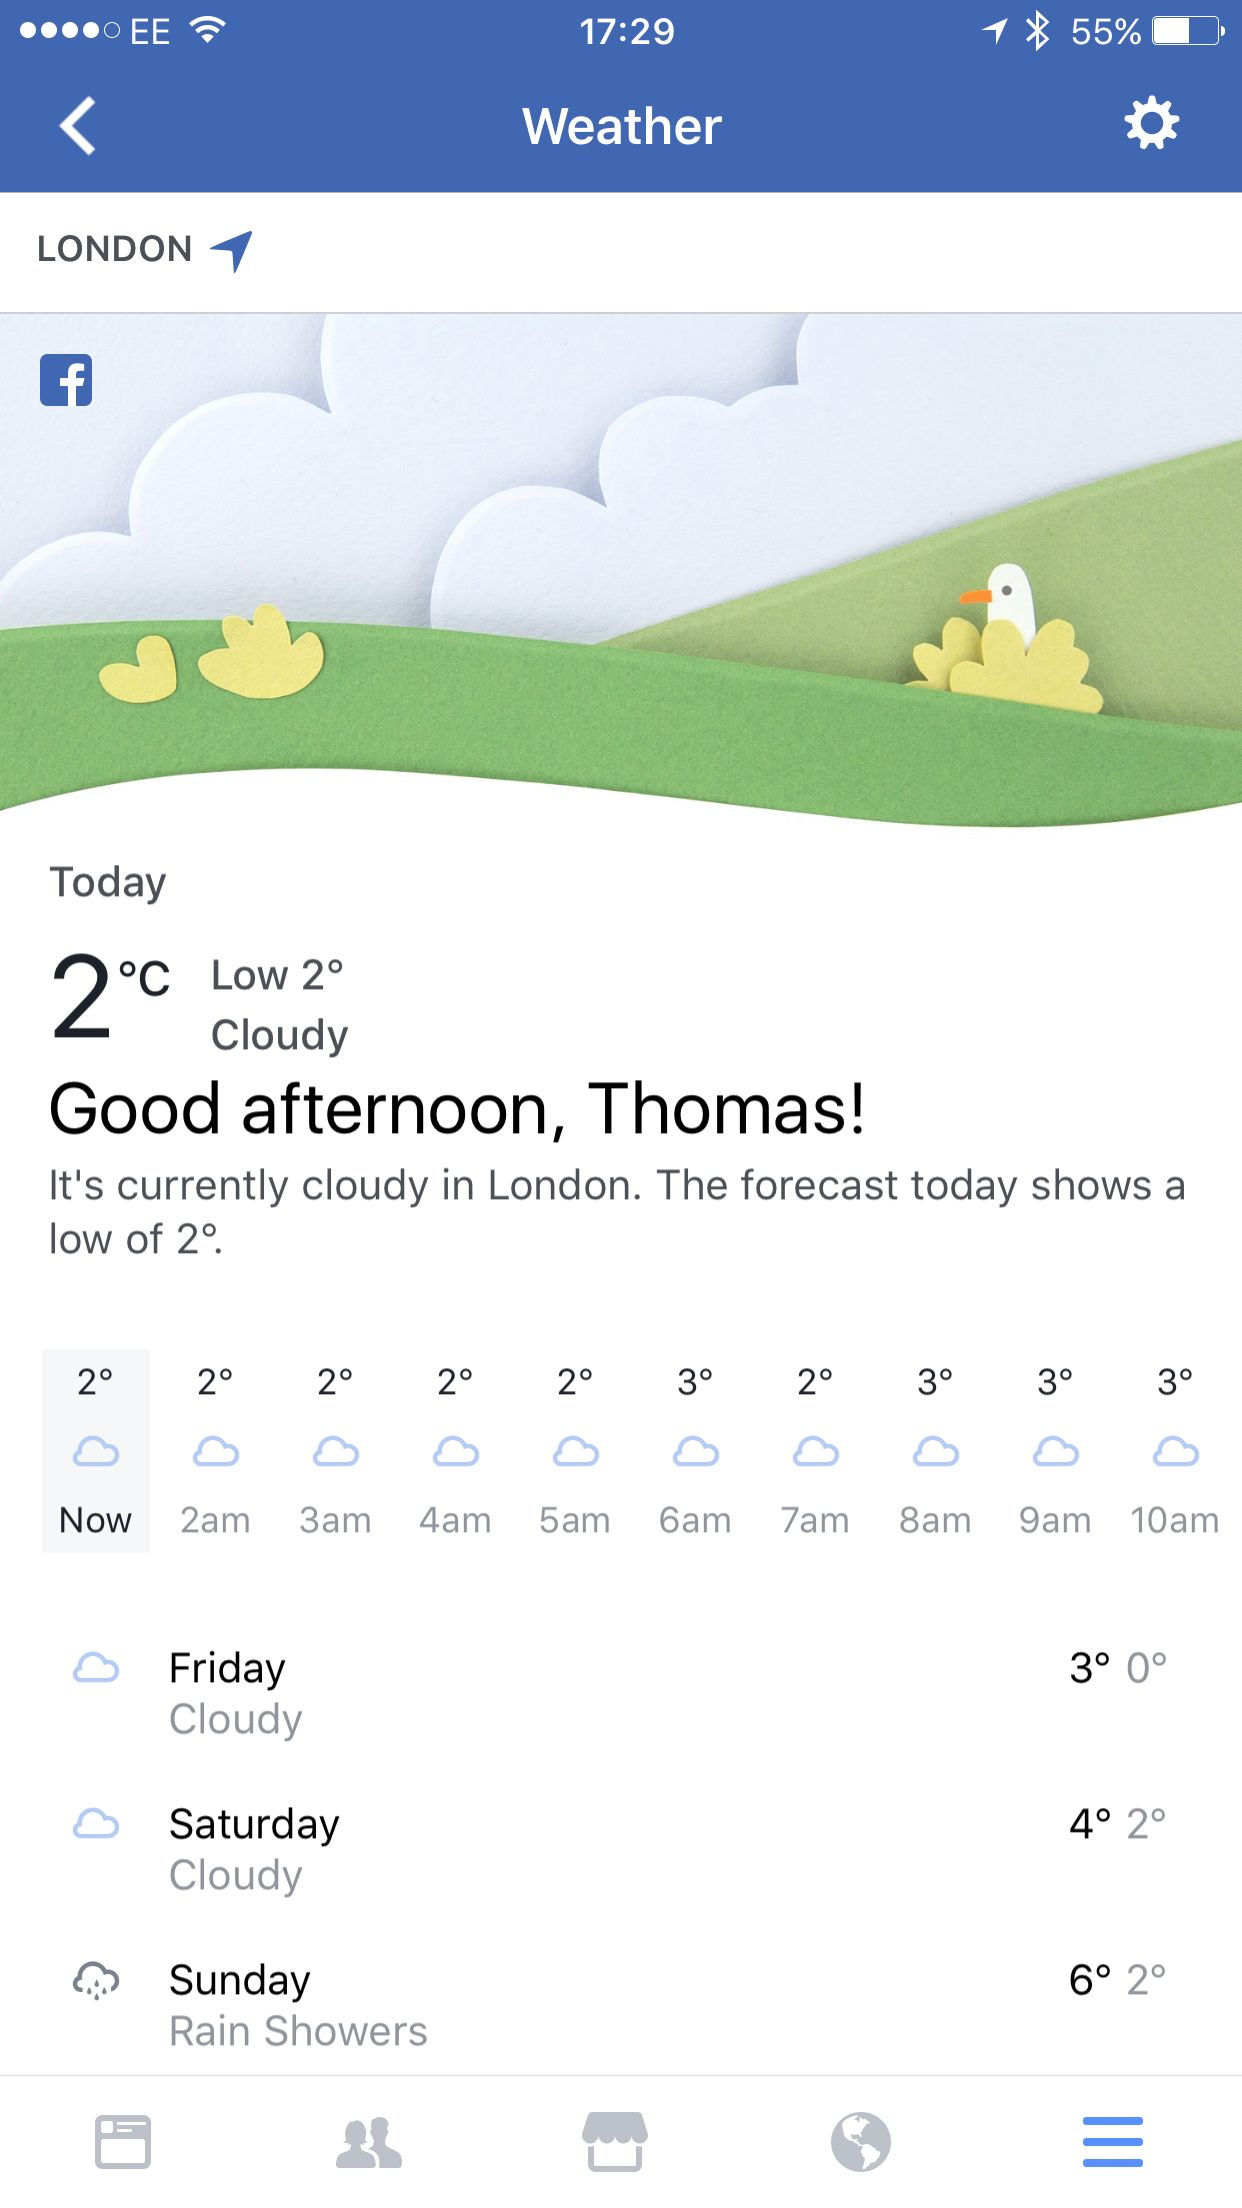 Facebook Has Just Launched Its Own In-Built Weather App